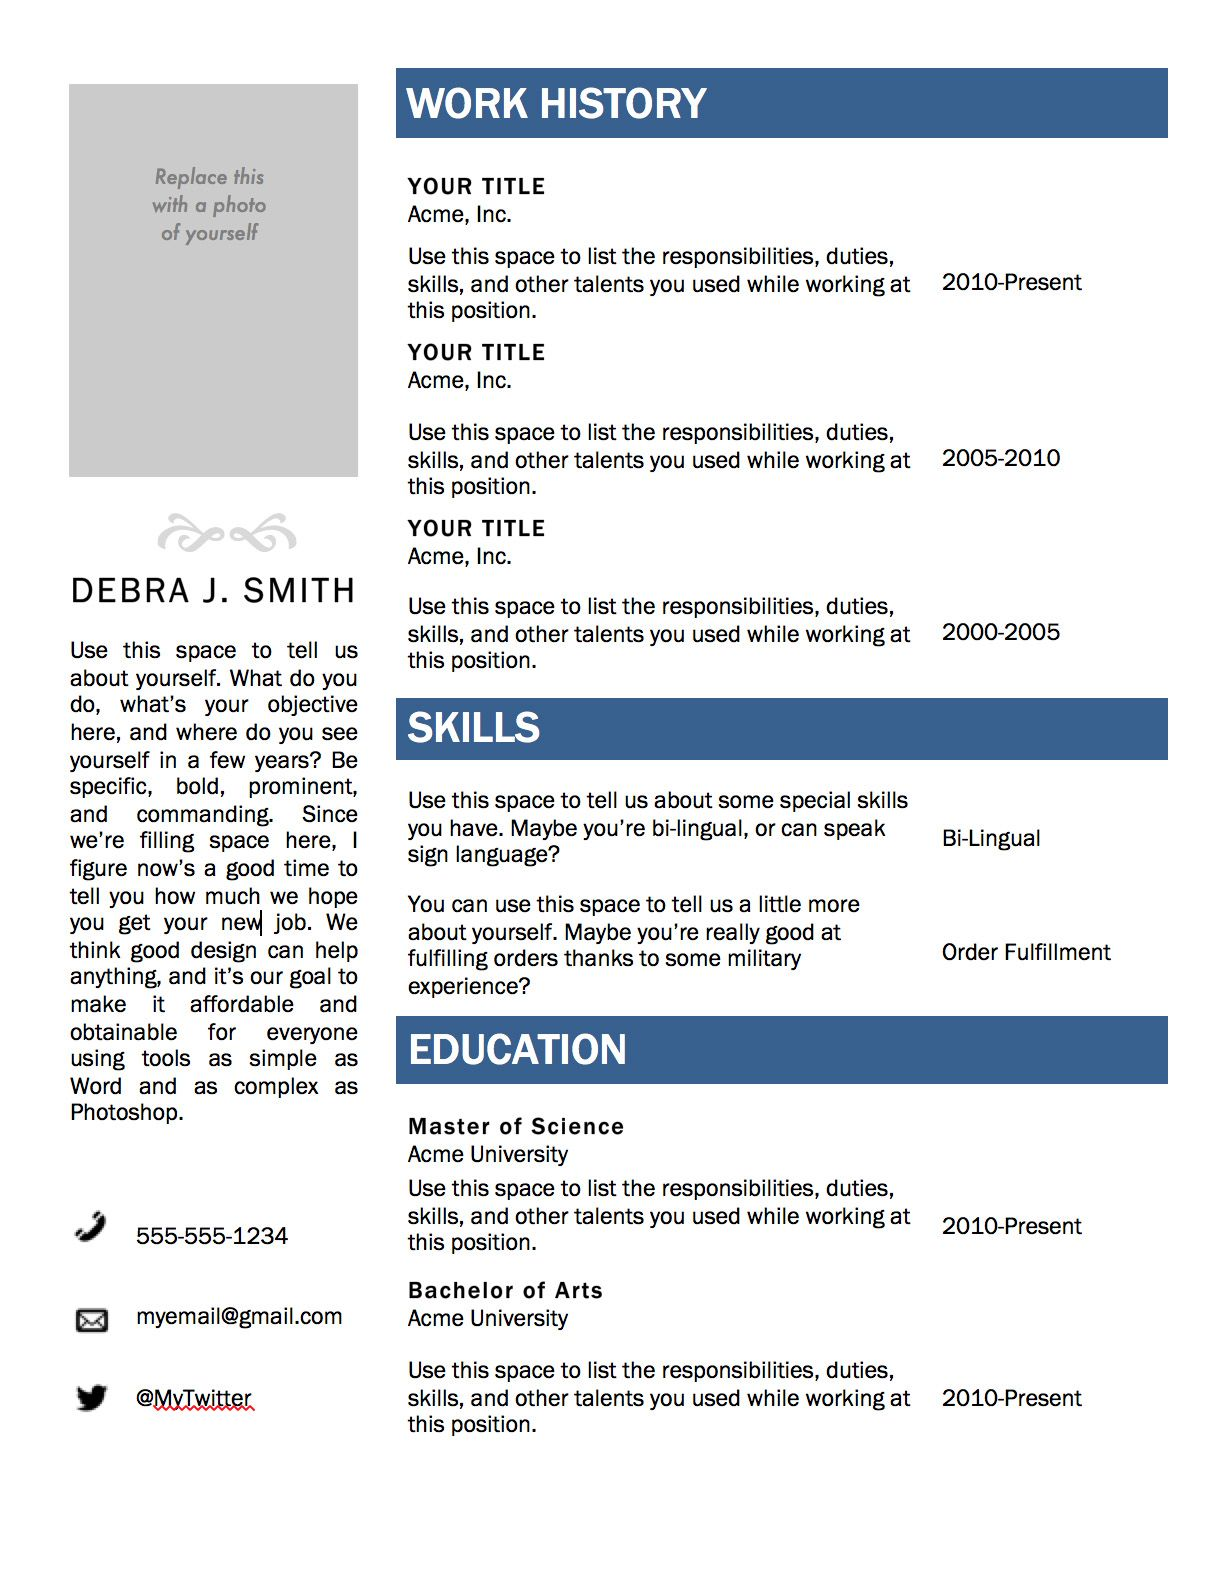 FREE Microsoft Word Resume Template | Best resume template ...